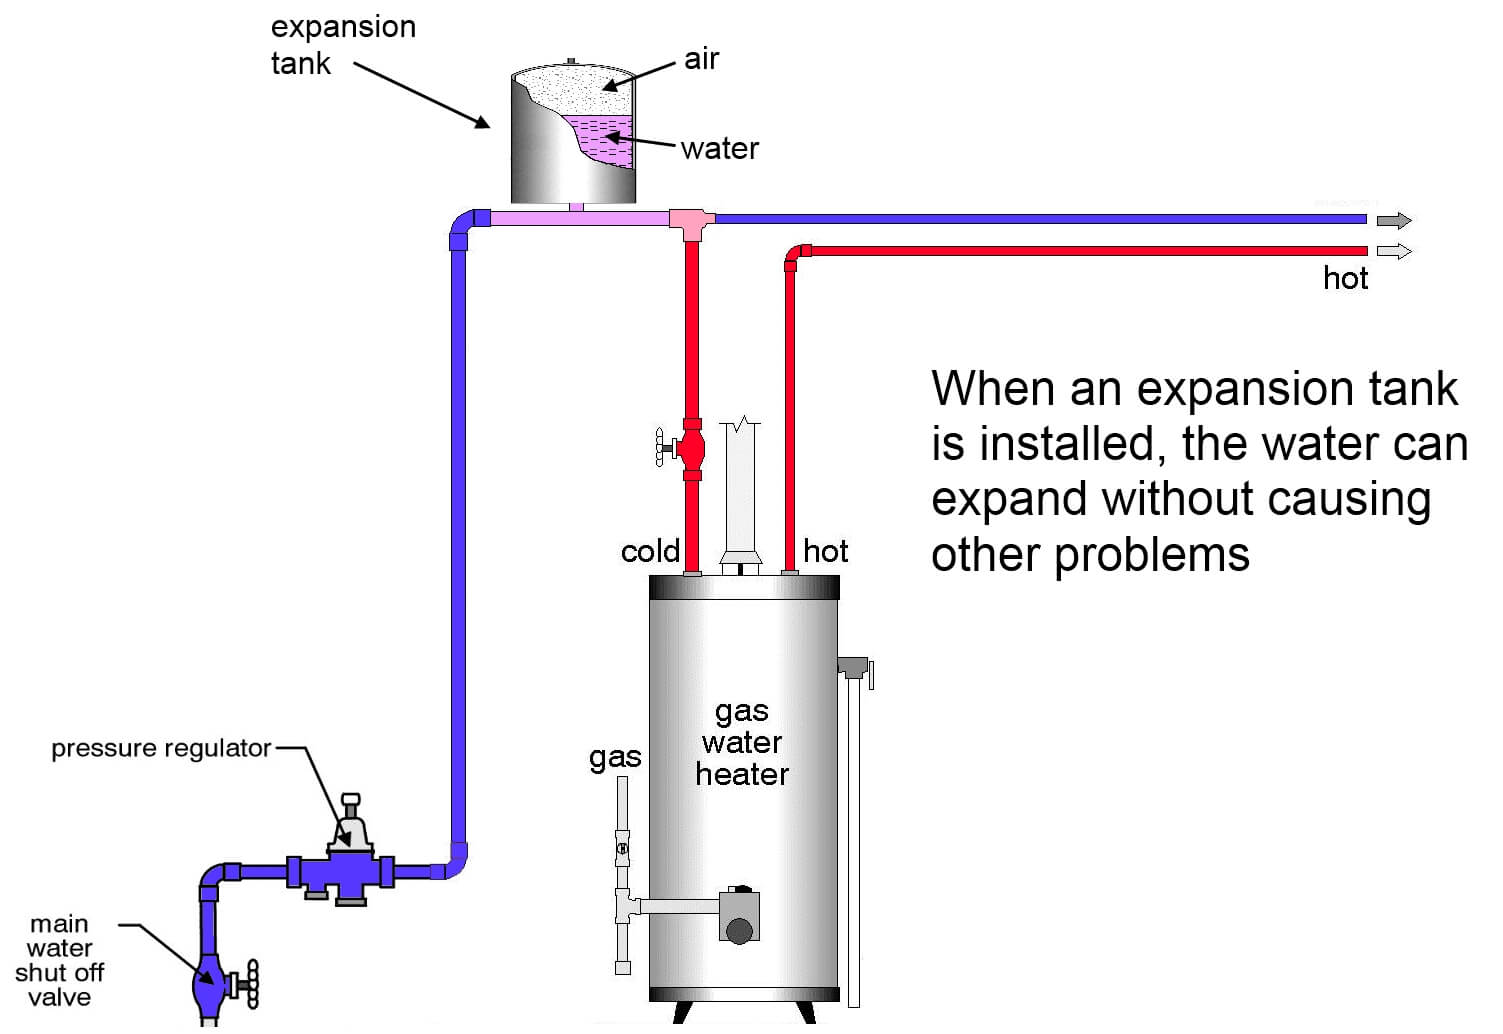 Expansion tank installed why the relief valve at the water heater is leaking, and what to do